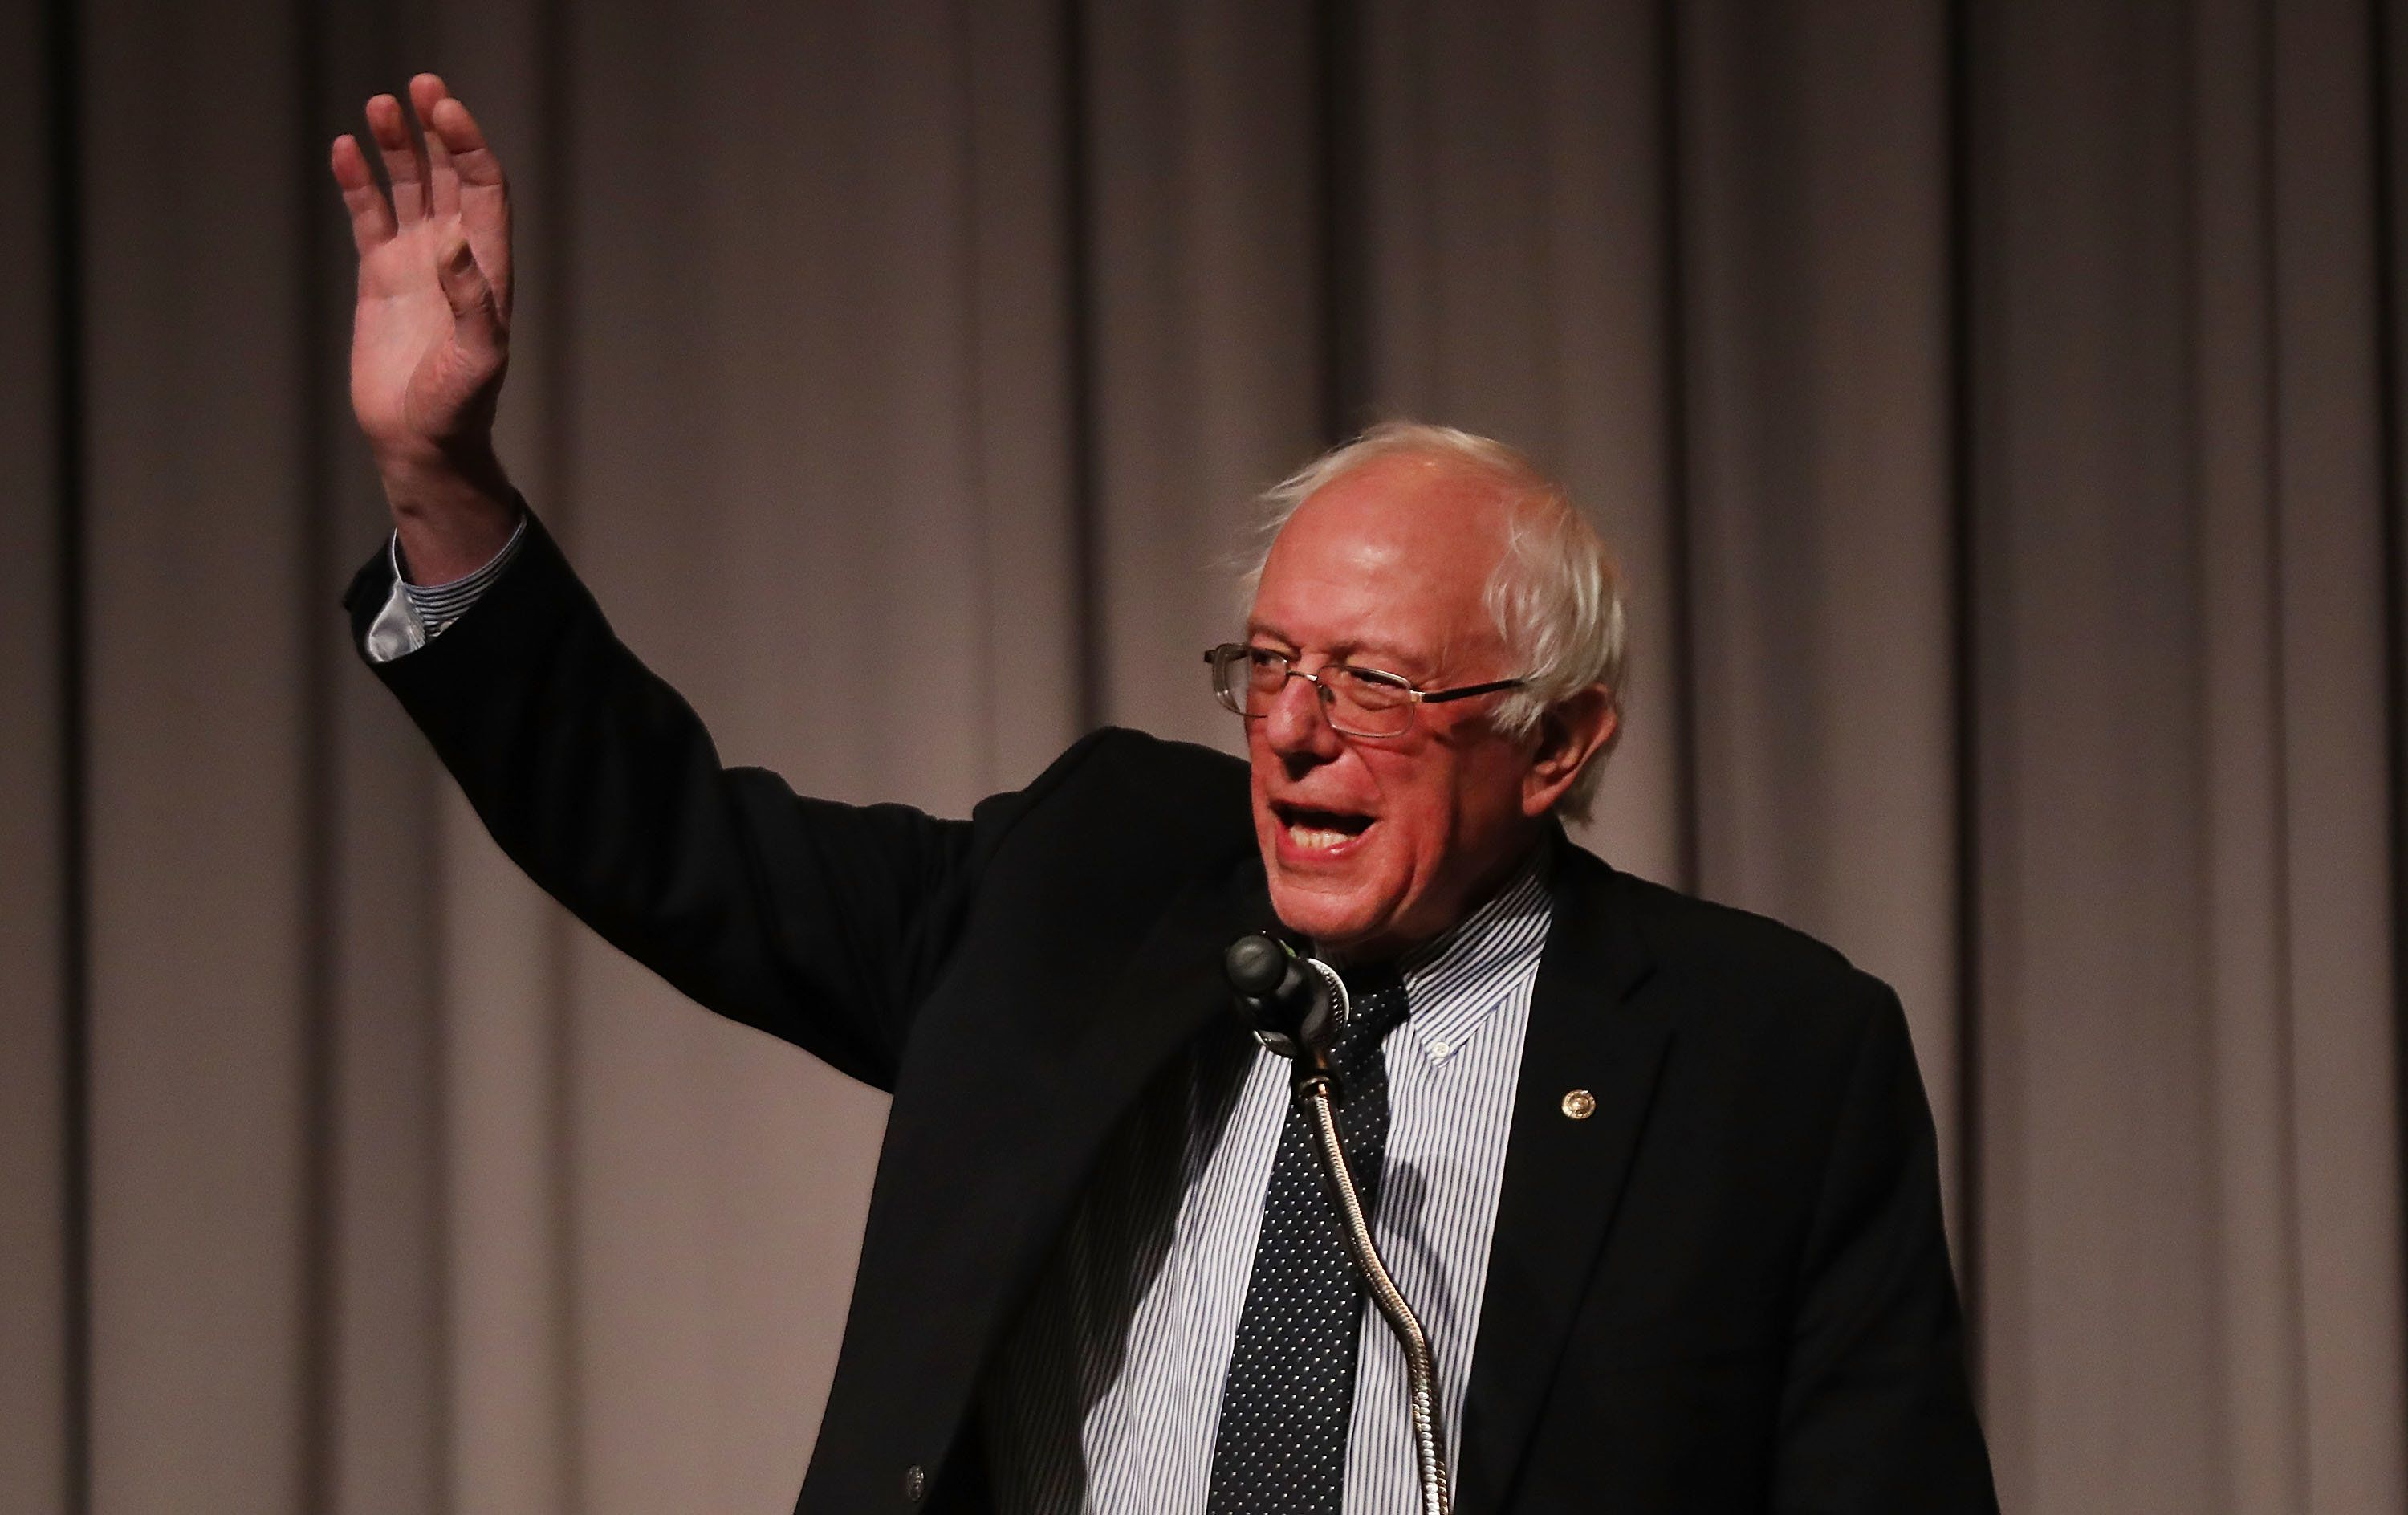 NEW YORK, NY - DECEMBER 13:  Former presidential candidate and Vermont Senator Bernie Sanders waves to the audience gathered to hear him speak at The Cooper Union on December 13, 2016 in New York City. Sanders also spoke about Donald Trump's win in the 2016 Presidential election and his new book, Our Revolution: A Future to Believe In. (Photo by Spencer Platt/Getty Images)